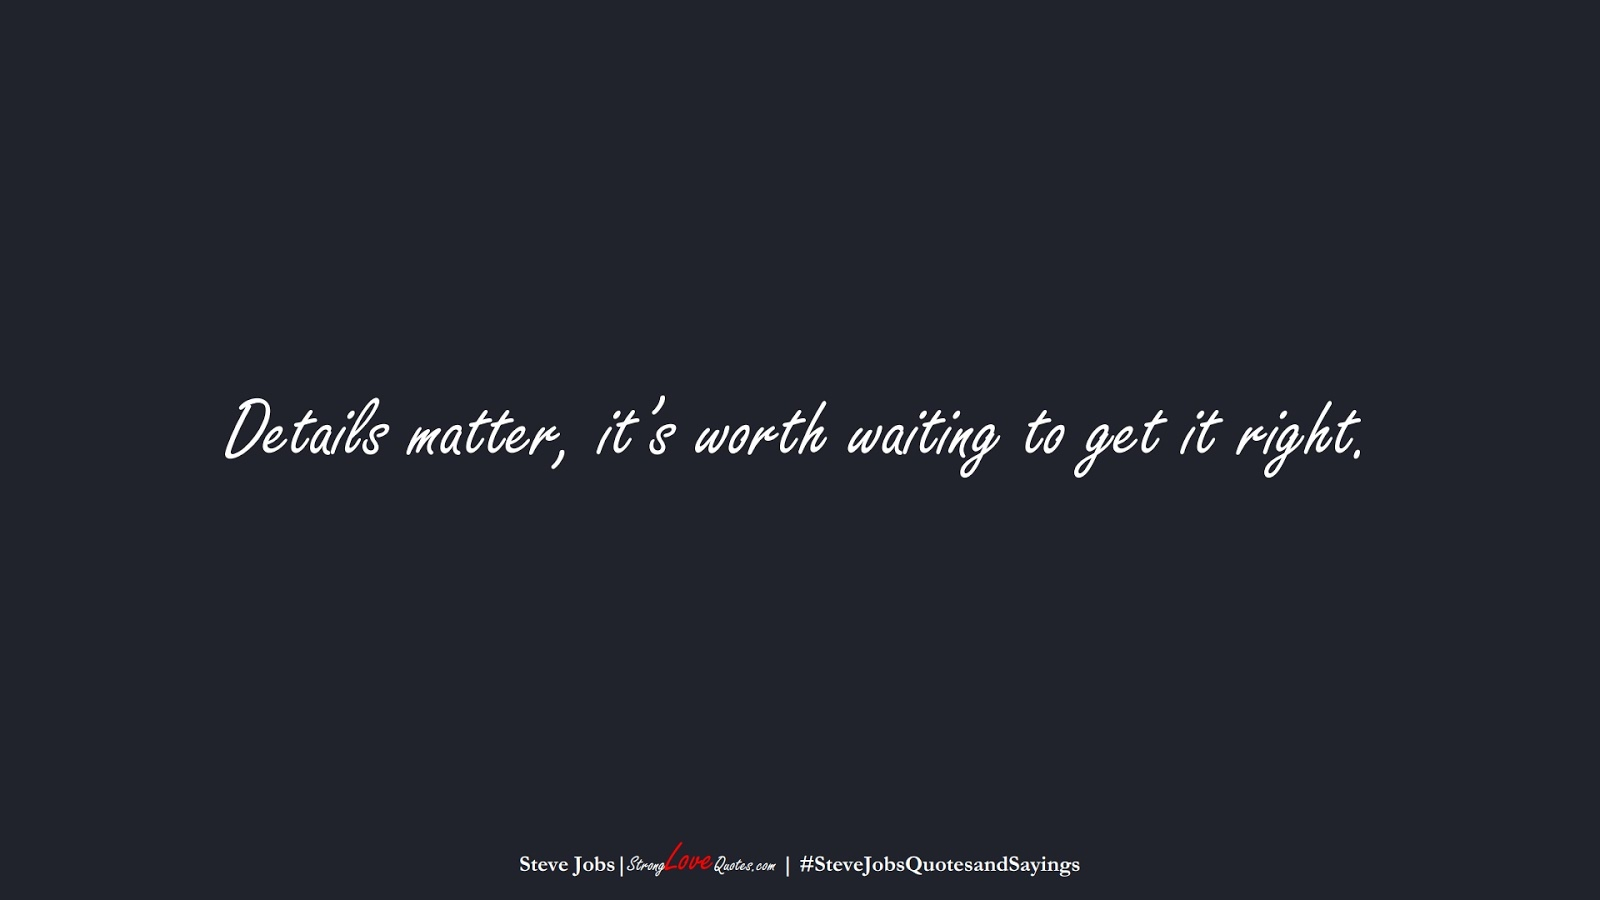 Details matter, it's worth waiting to get it right. (Steve Jobs);  #SteveJobsQuotesandSayings